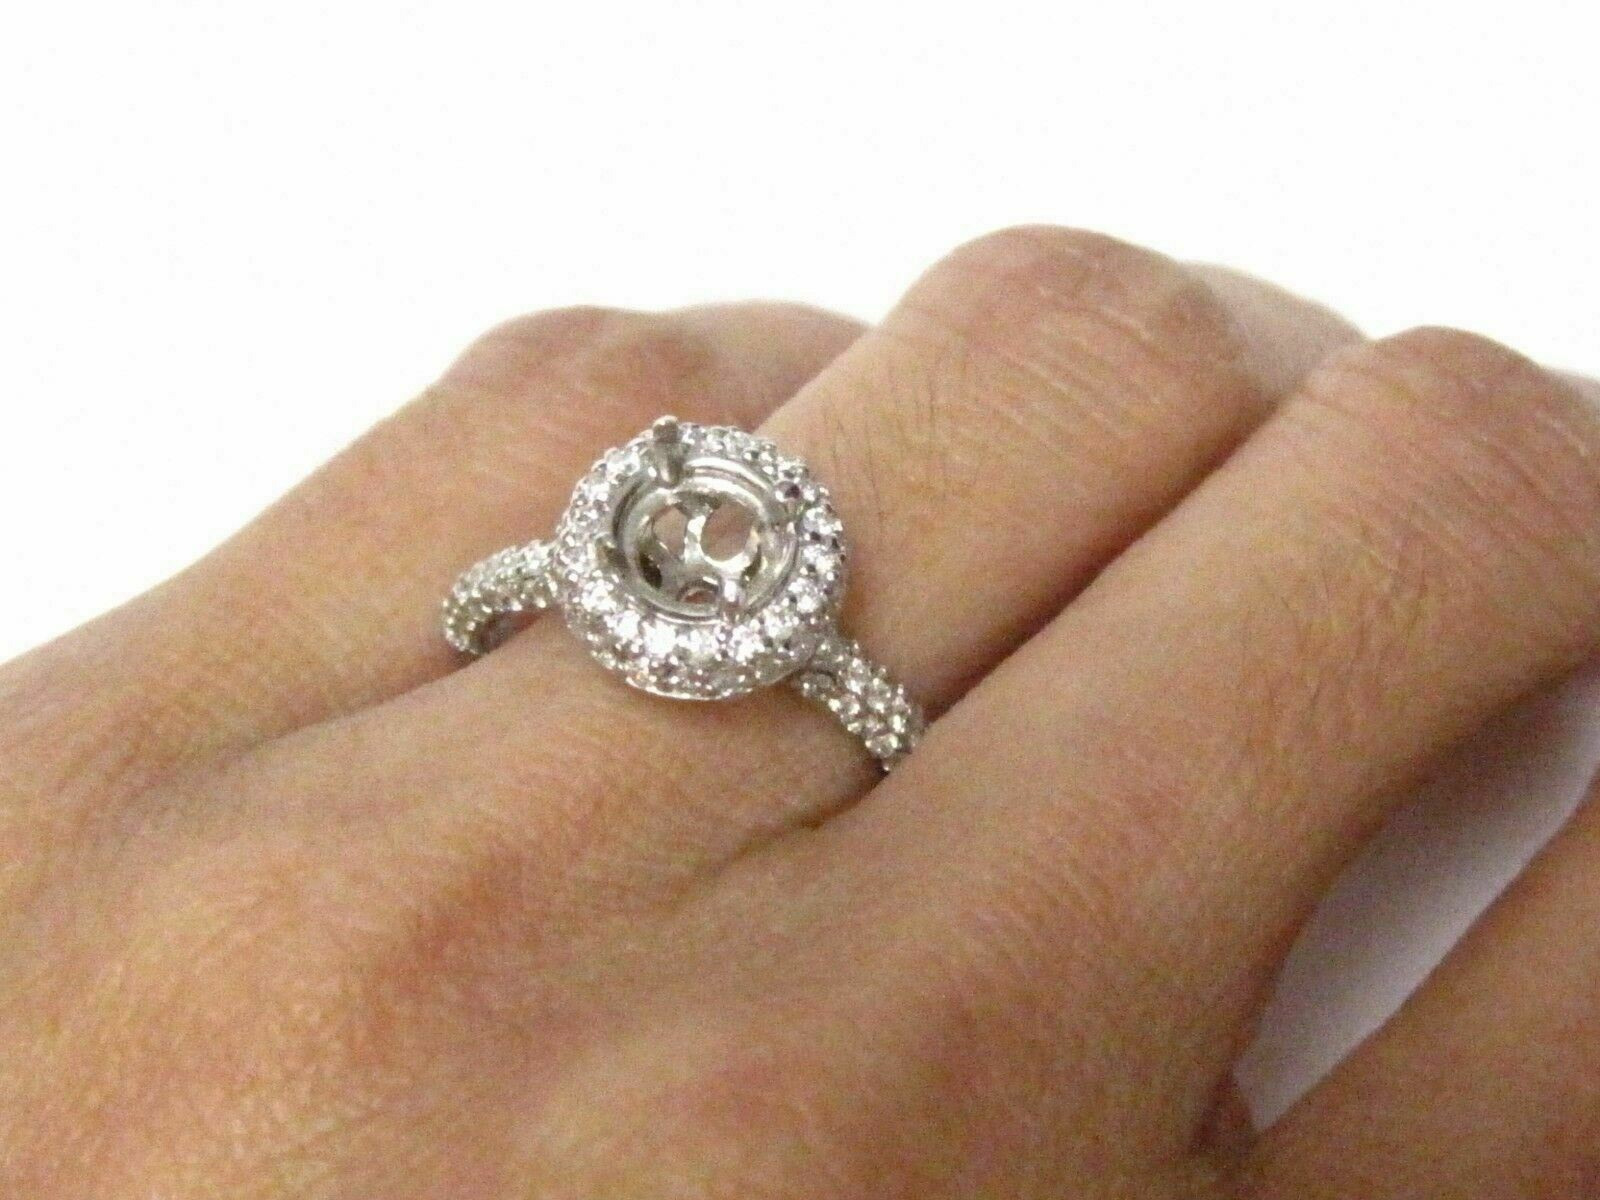 4 Prongs Semi-Mounting for Round Cut Diamond Ring Engagement 14k W/G